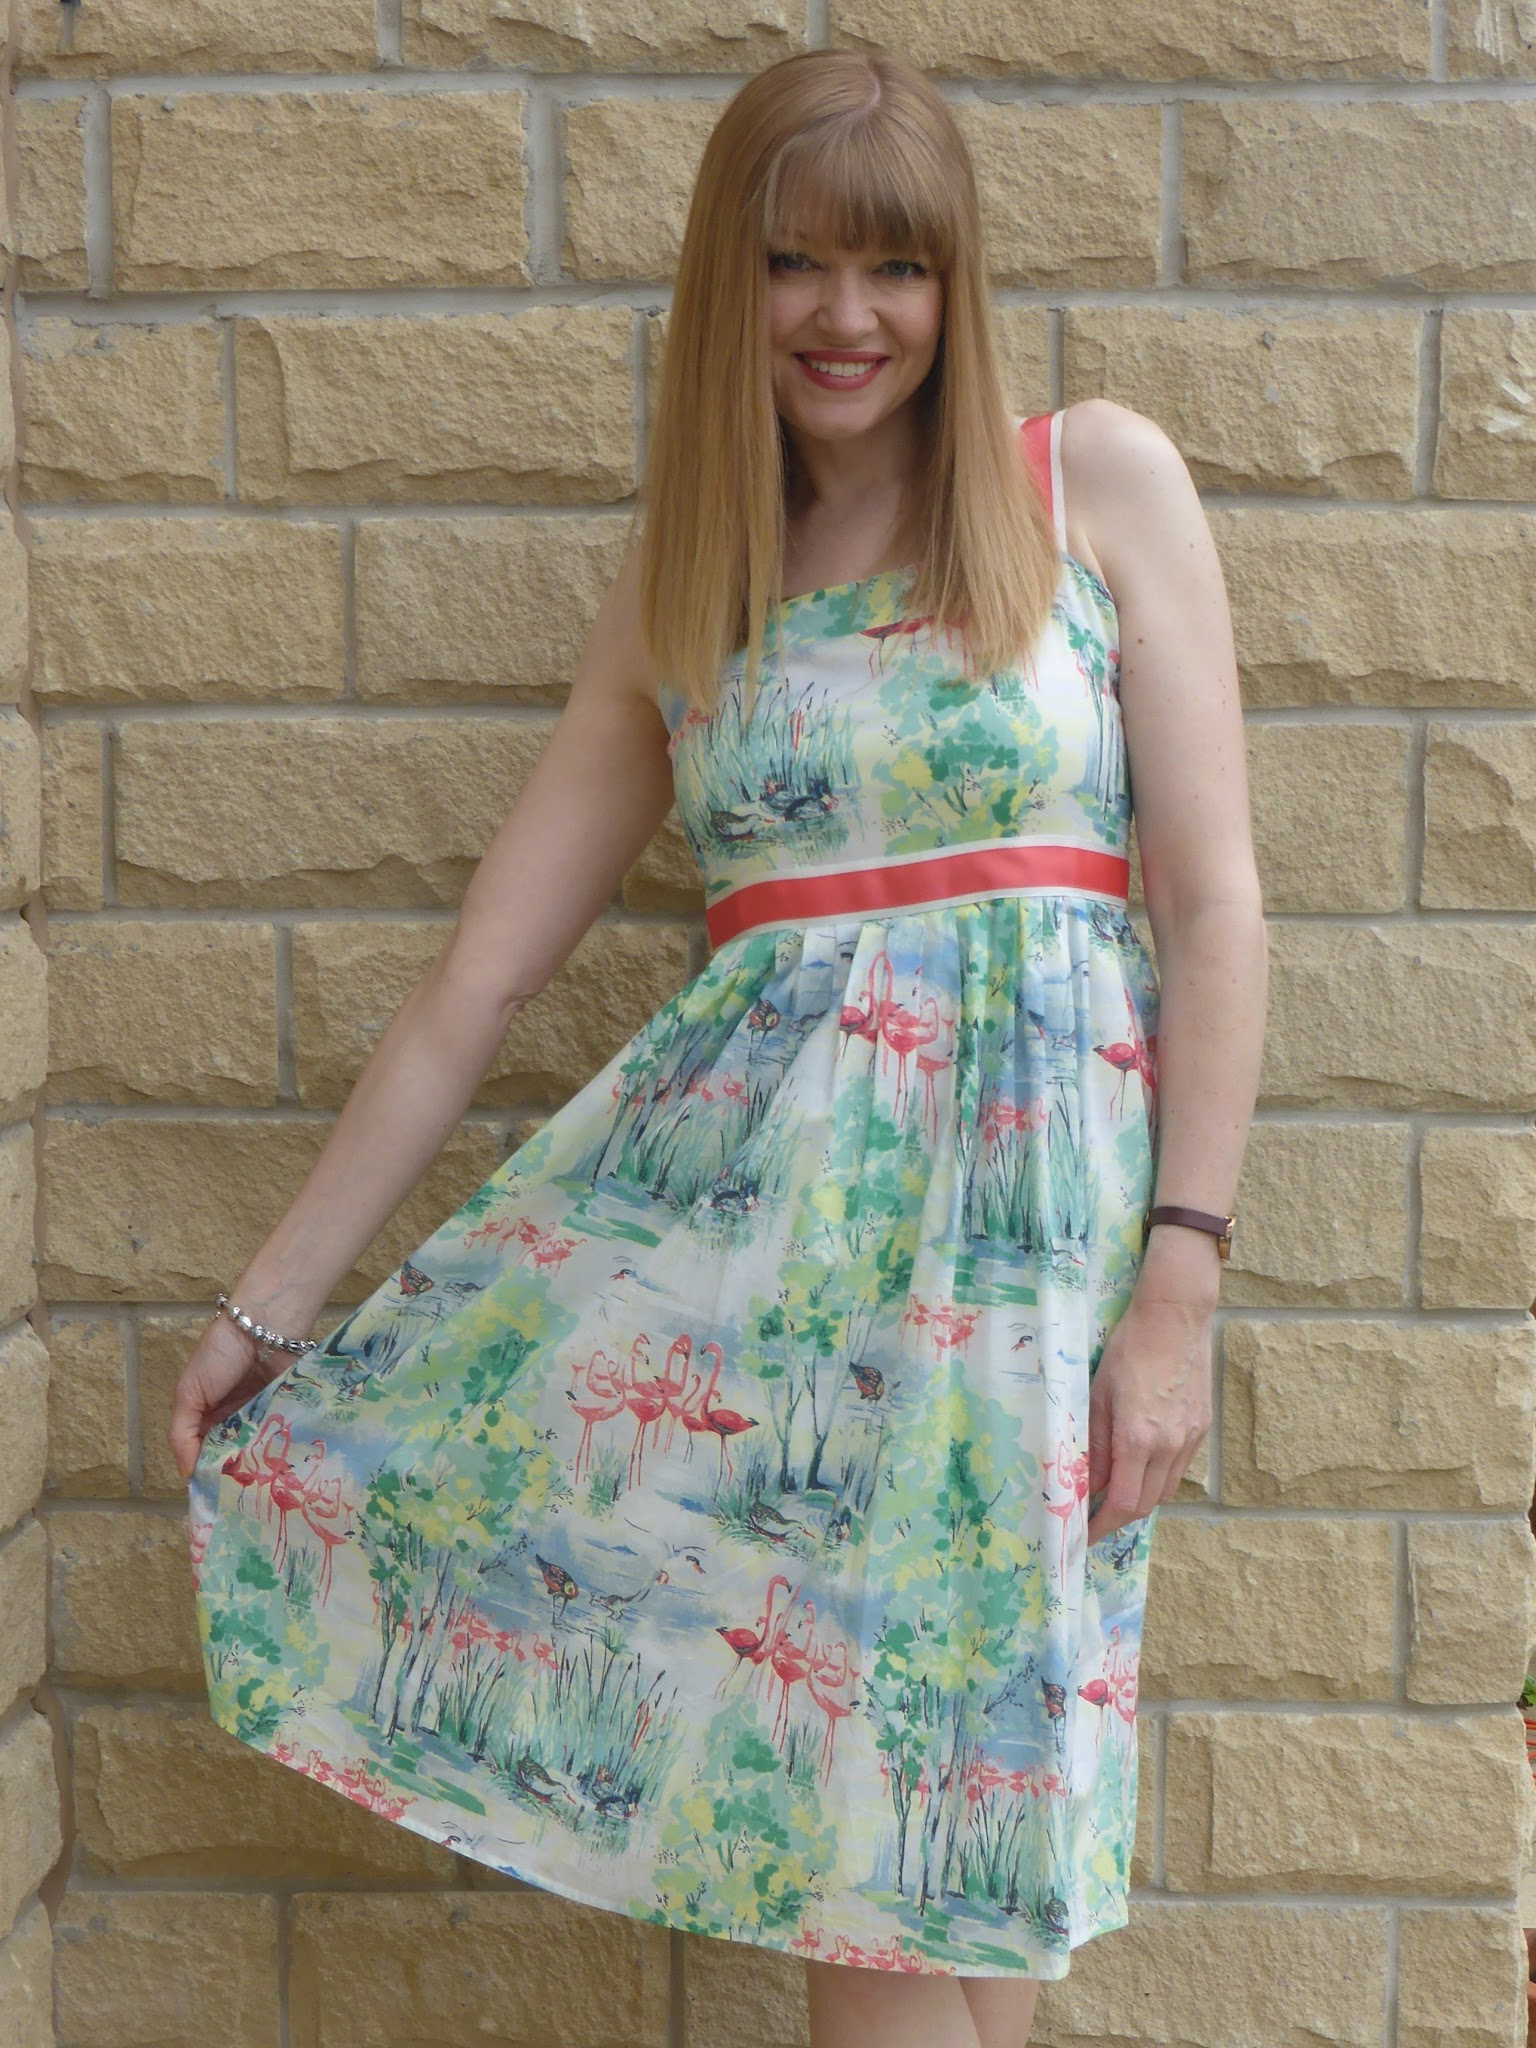 What Lizzy Loves, over 40 blogger wears summer flamingo print dress and silver wedge sandals